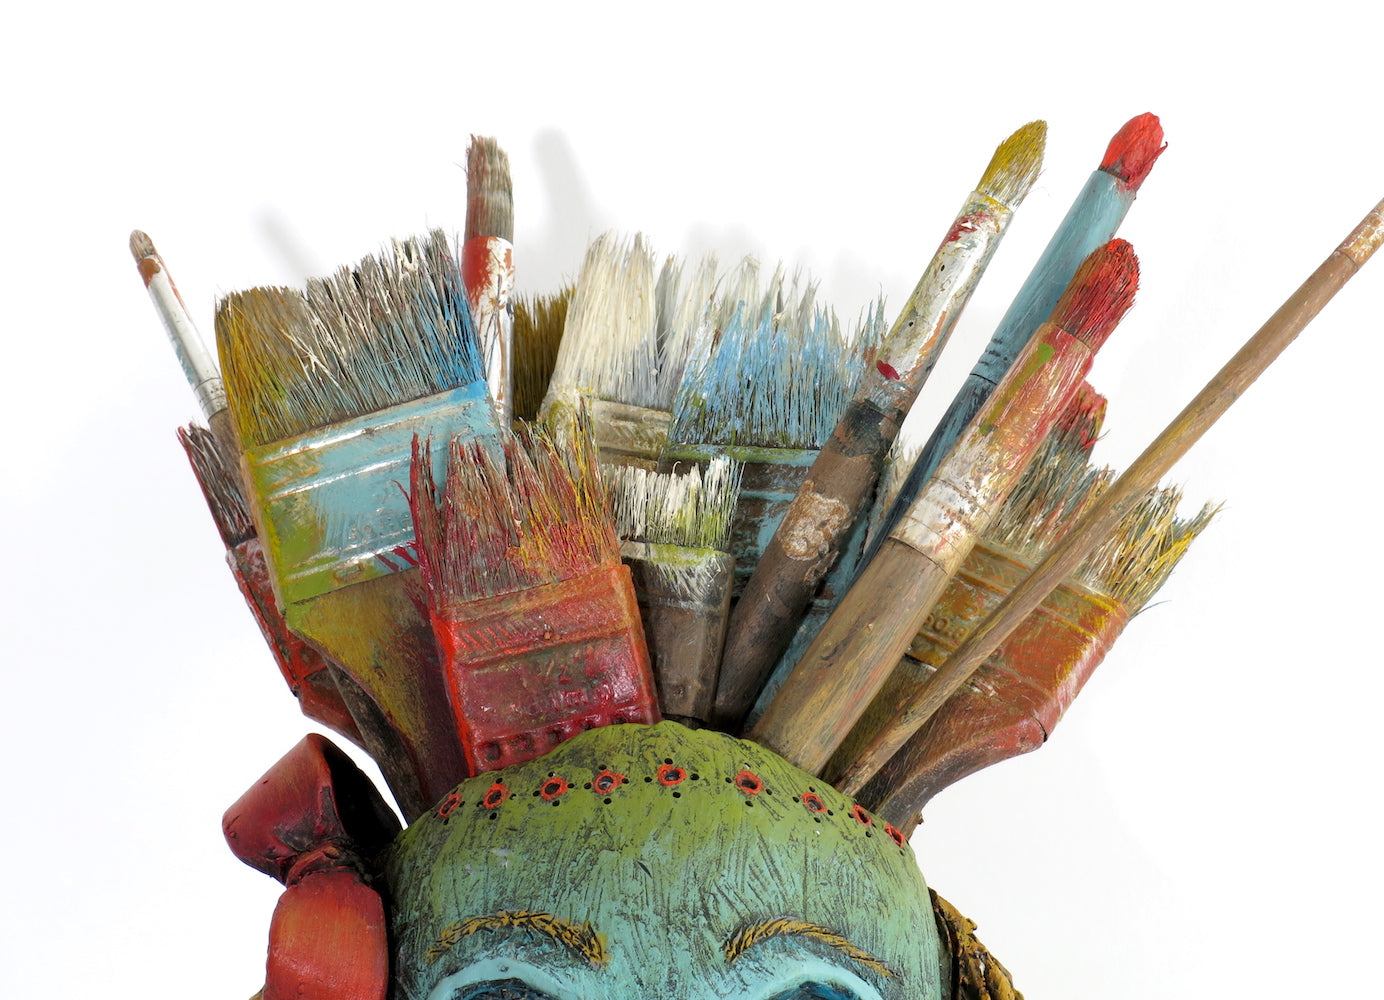 """Recounting My Many Brushes With Death"" Original ceramic sculpture by Jacquline Hurlbert"